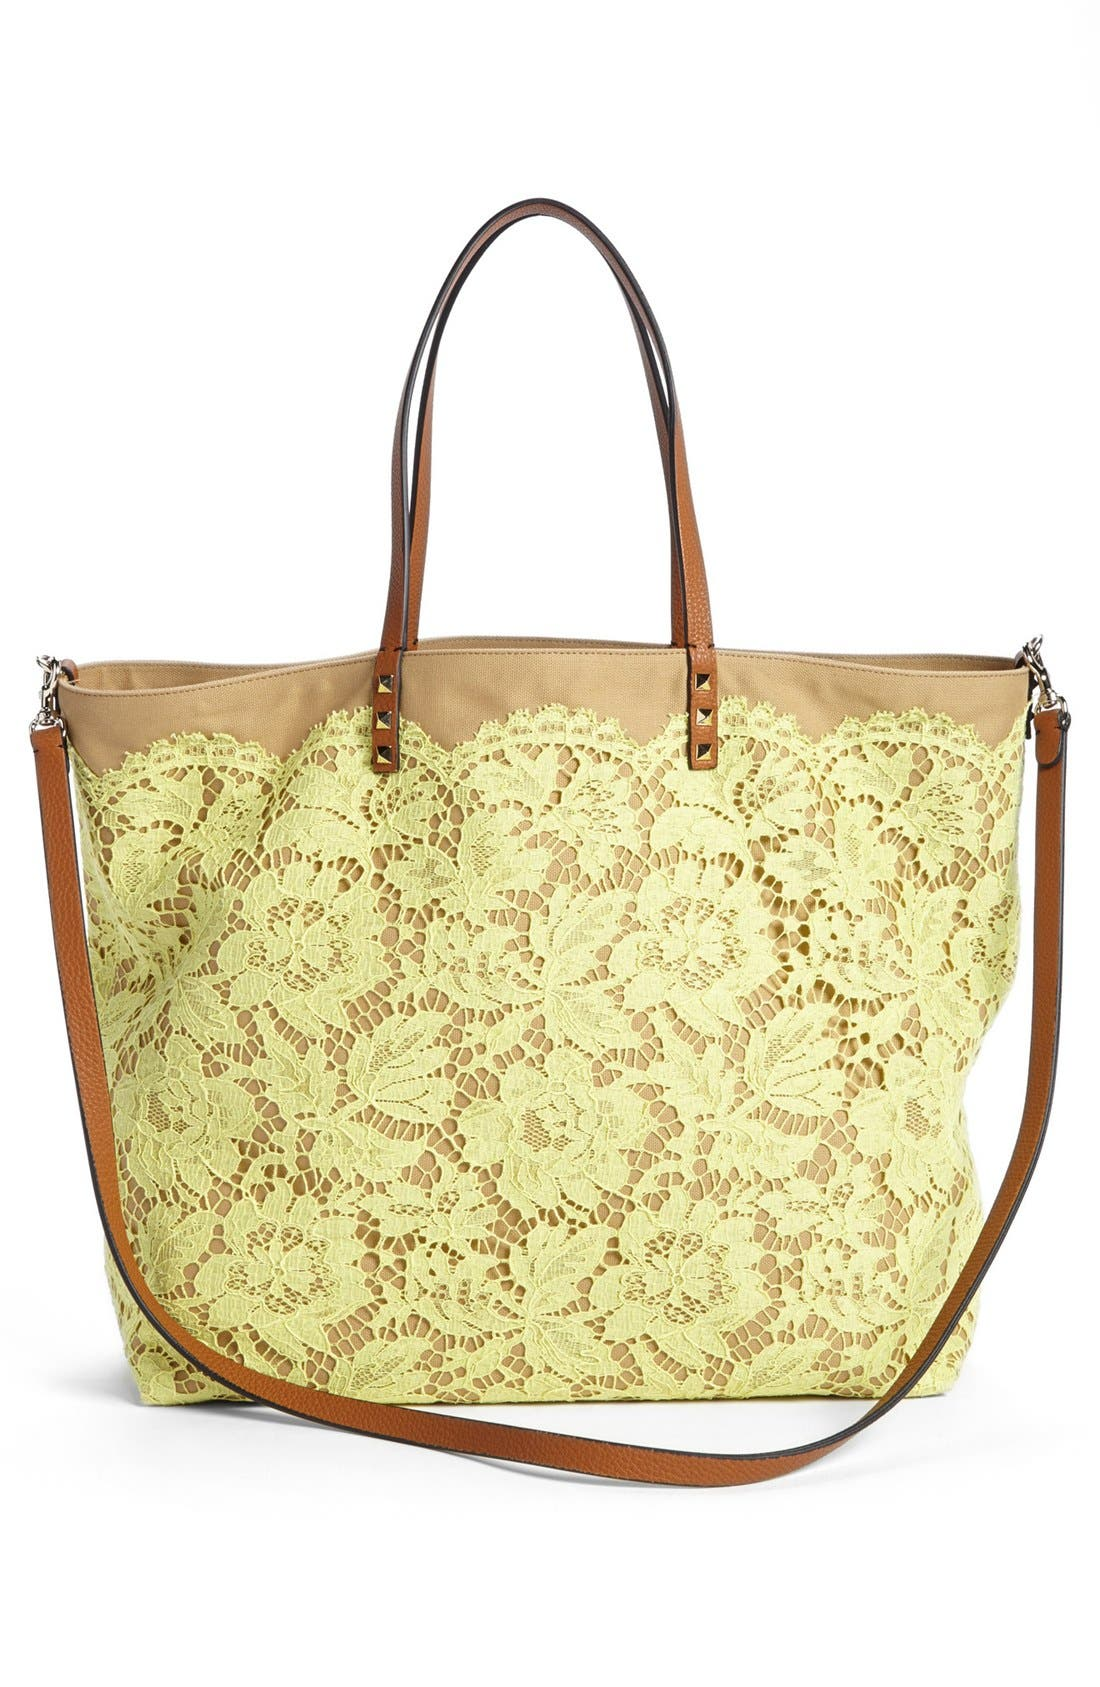 Alternate Image 1 Selected - Valentino 'Glam' Reversible Lace Tote